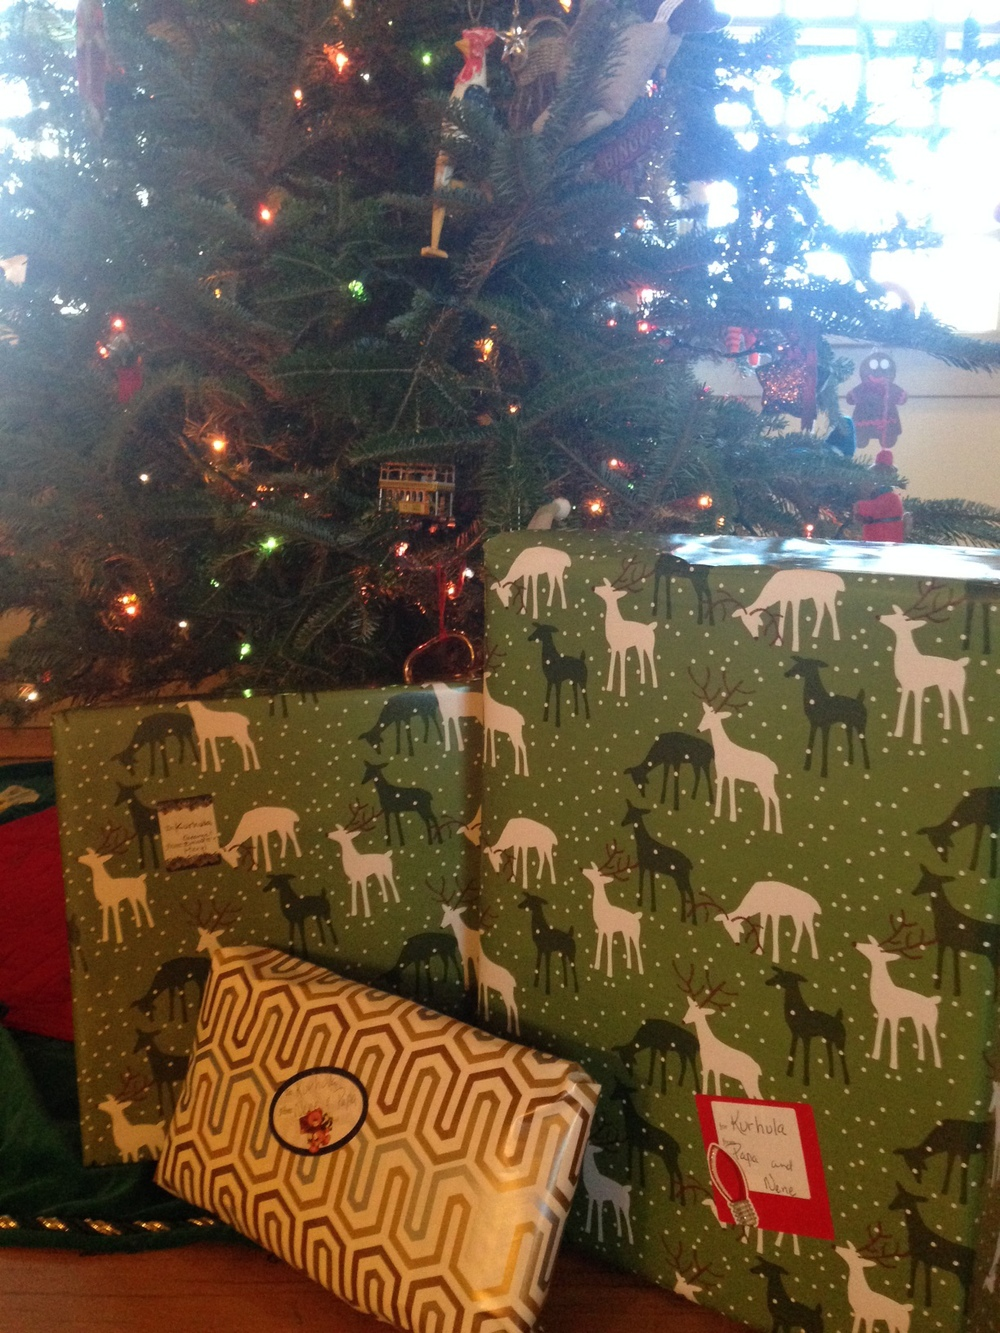 Gifts for K under the tree